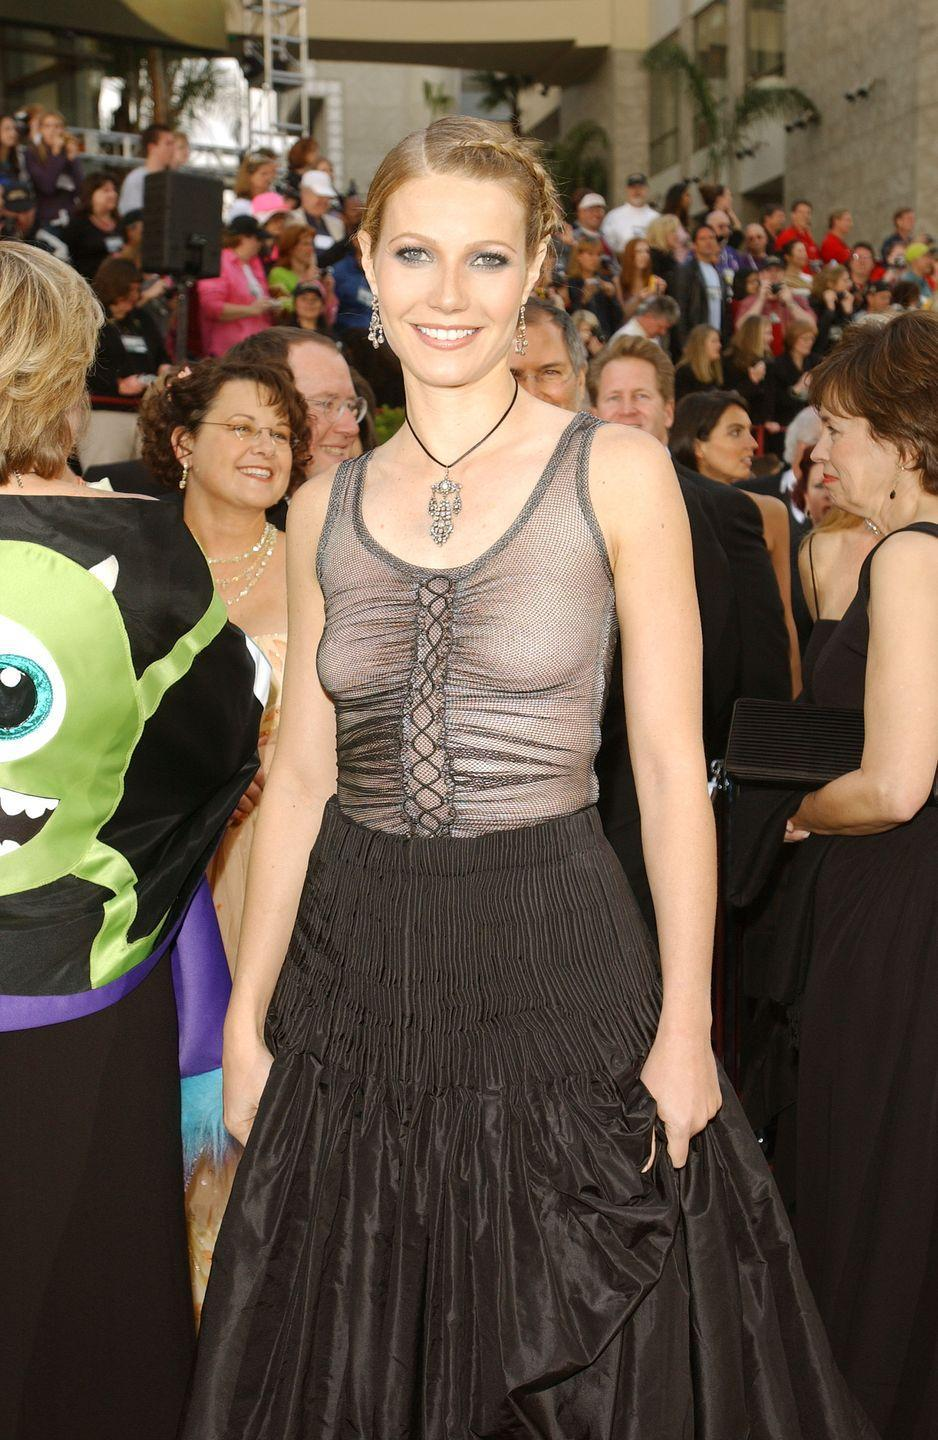 """<p>Gwyneth herself expressed some regrets about this red carpet look. In a <a href=""""https://www.today.com/style/gwyneth-paltrow-i-should-have-worn-bra-2002-oscars-1C8637763"""" rel=""""nofollow noopener"""" target=""""_blank"""" data-ylk=""""slk:post for Goop"""" class=""""link rapid-noclick-resp"""">post for Goop</a> several years later, she said, """"I still love the dress itself but I should have worn a bra."""" She may have loved the dress, but critics didn't. One <em>Guardian </em>writer wrote, """"The usually chic Gwyneth Paltrow came a cropper in a tacky transparent black vest by Alexander McQueen. Her gap-year plaits, goth eye make-up and clunky jewellery were more Camden Market than red carpet.""""  </p>"""